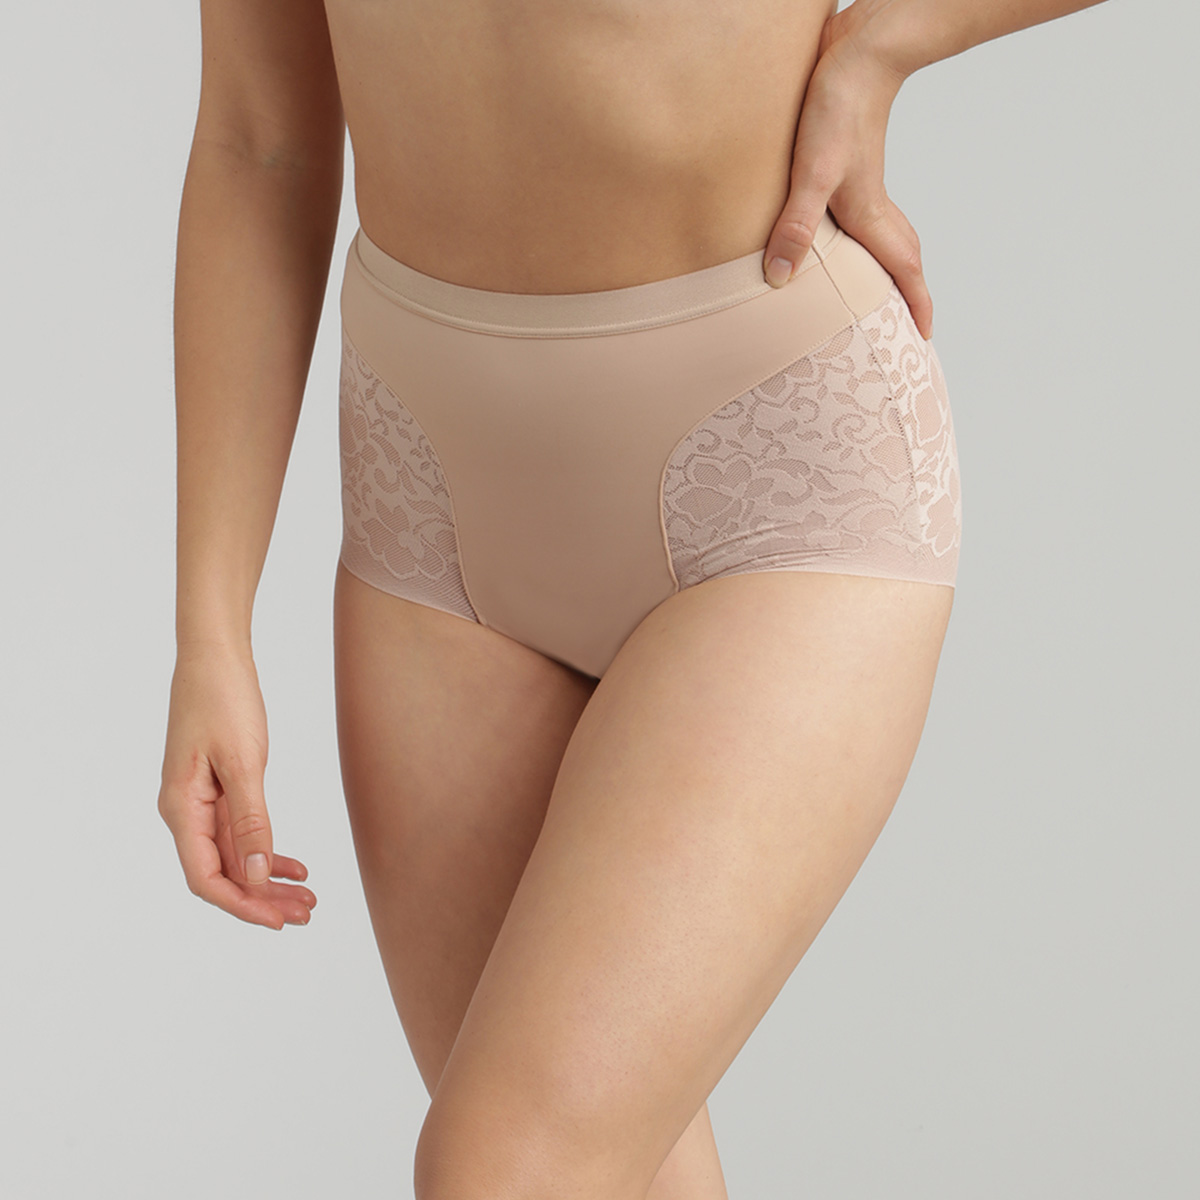 Beige Full Shaping Briefs - Expert in Silhouette, , PLAYTEX